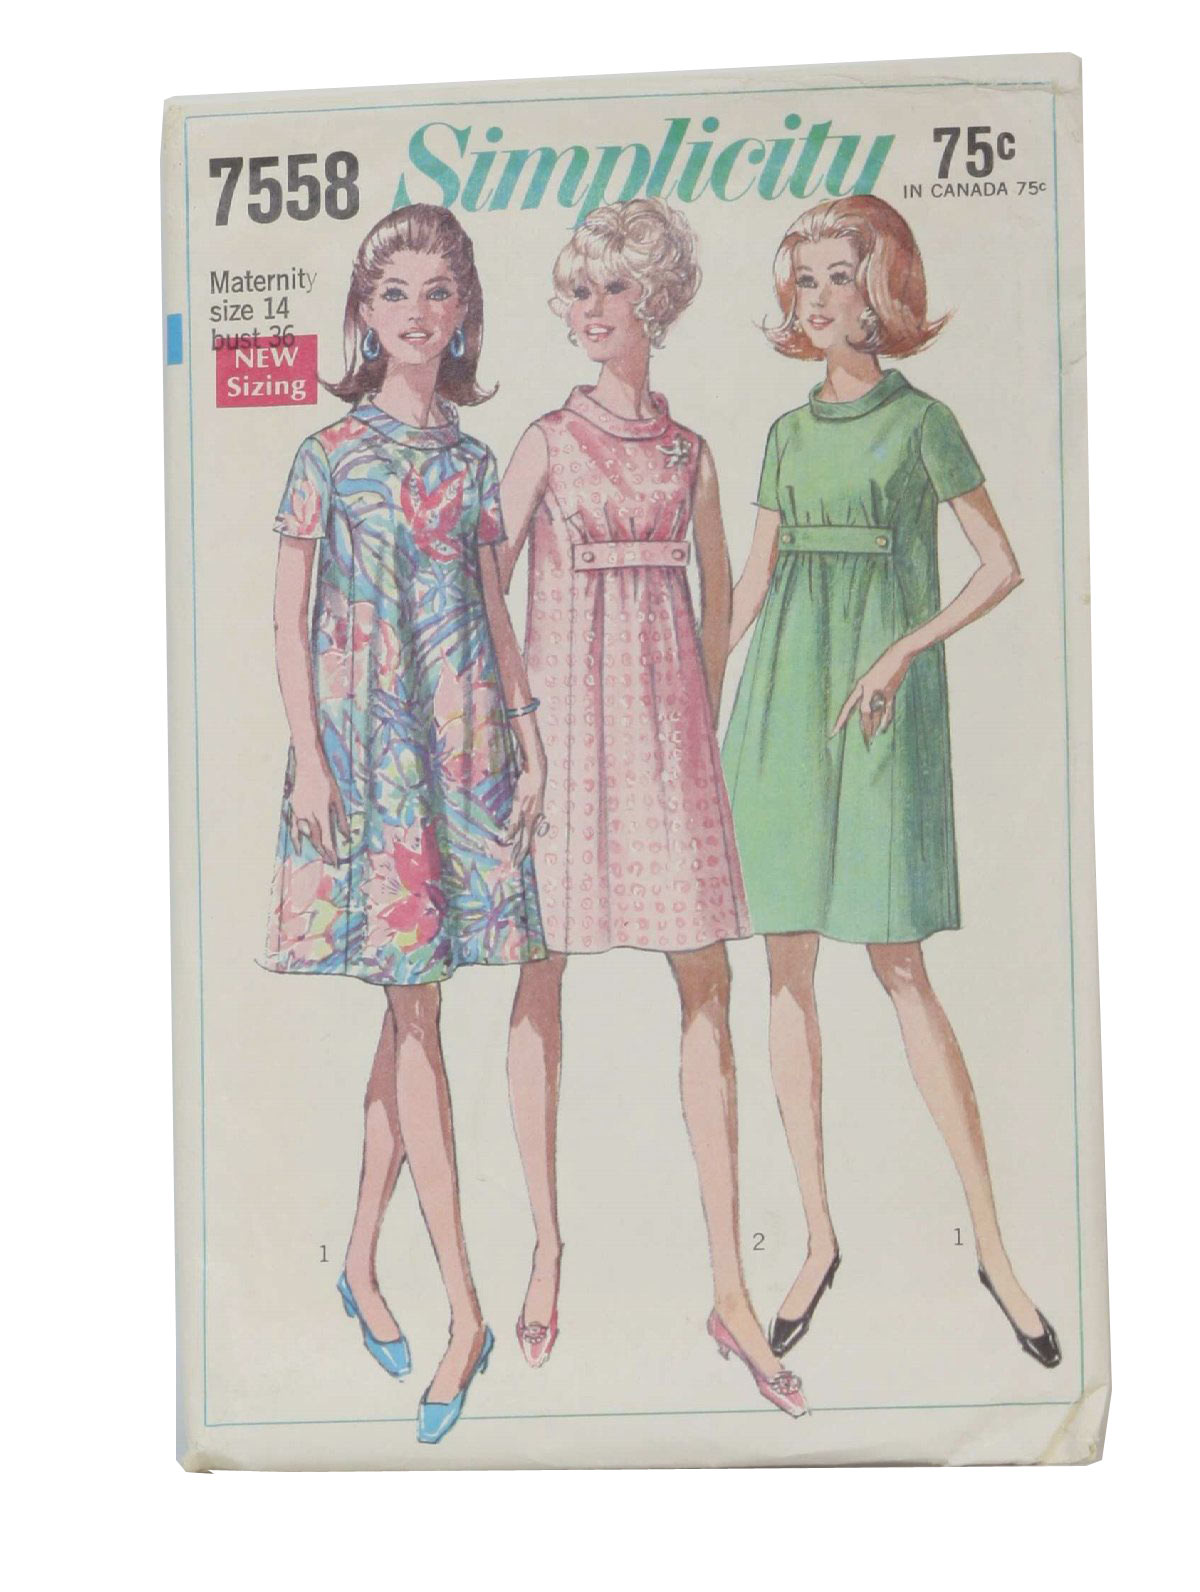 1960s retro sewing pattern 1968 simplicity pattern no 7558 1960s retro sewing pattern 1968 simplicity pattern no 7558 maternity dress in misses sizes the dress with let out sides seams has princess seaming ombrellifo Images